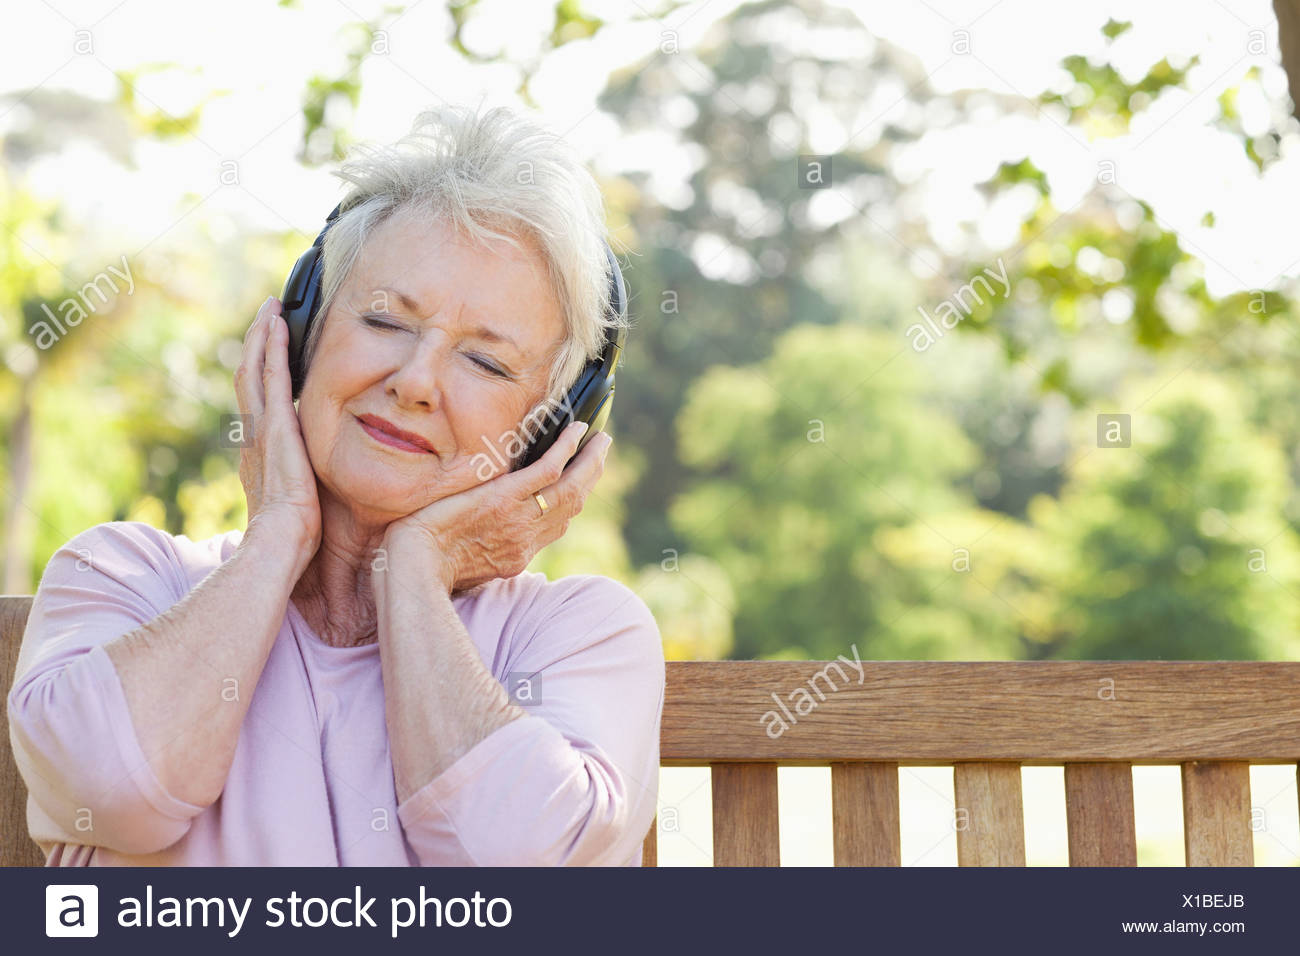 Woman listening to music using headphones with her head tilted - Stock Image